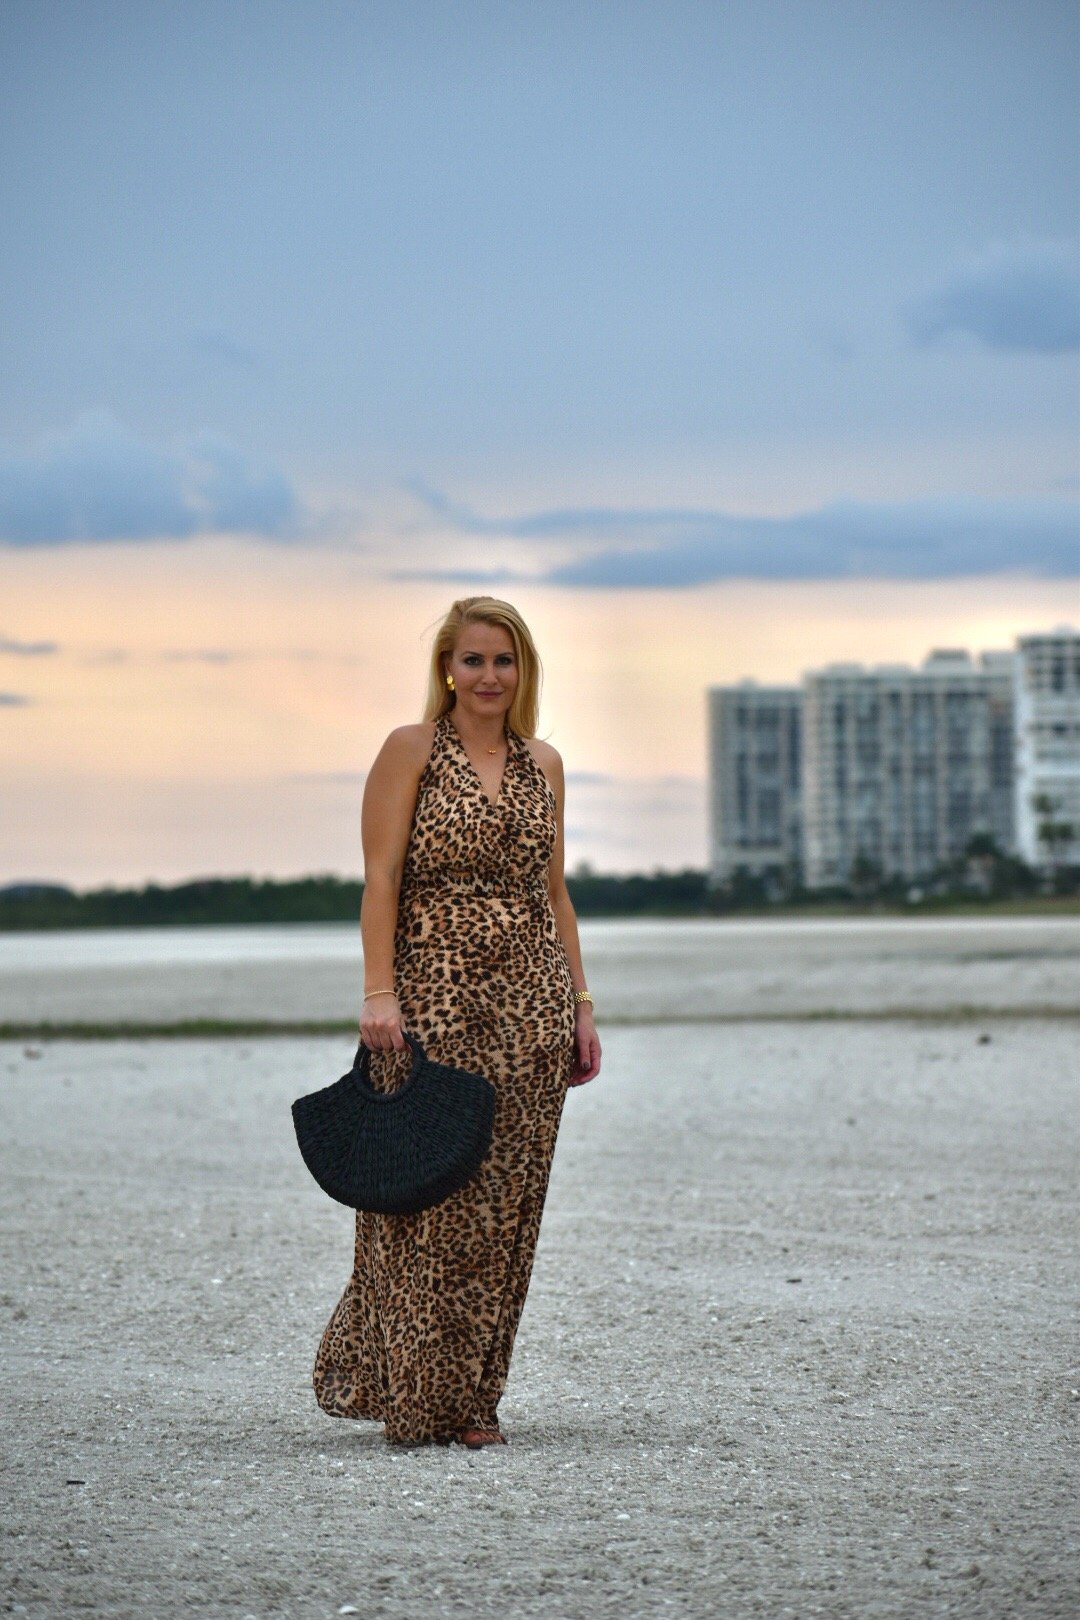 Leopard Print, Leopard Dress, Chetta B Leopard Print Dress, Gorjana Jewelry and Black Straw Tote in Marco Island Florida